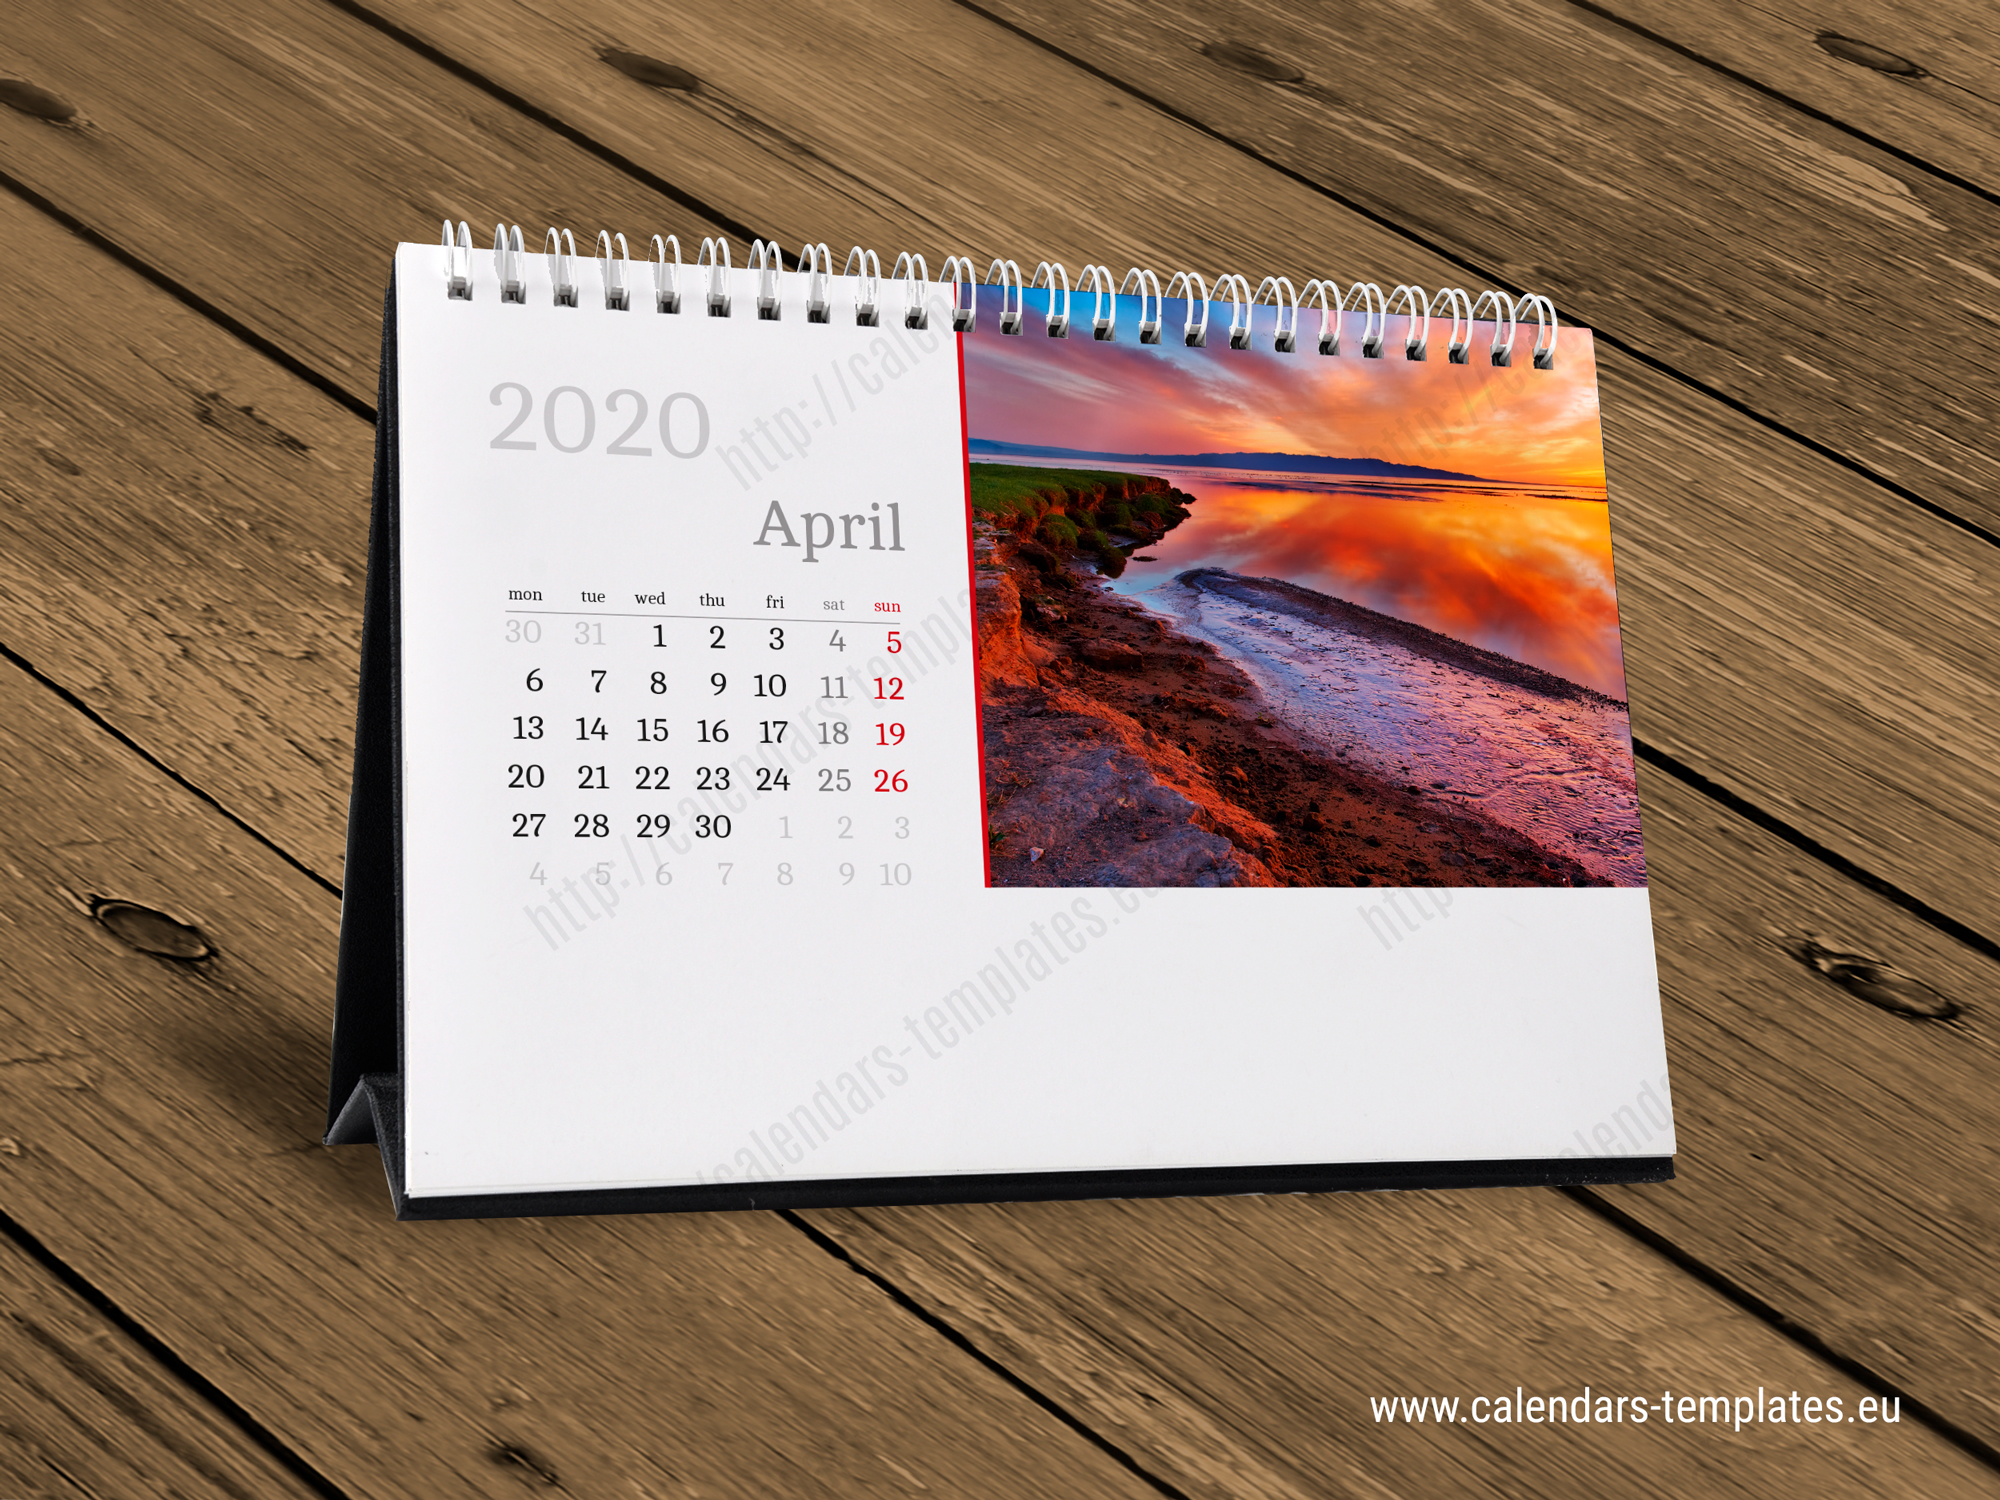 2020 Desk Monthly Calendar KB10-W4